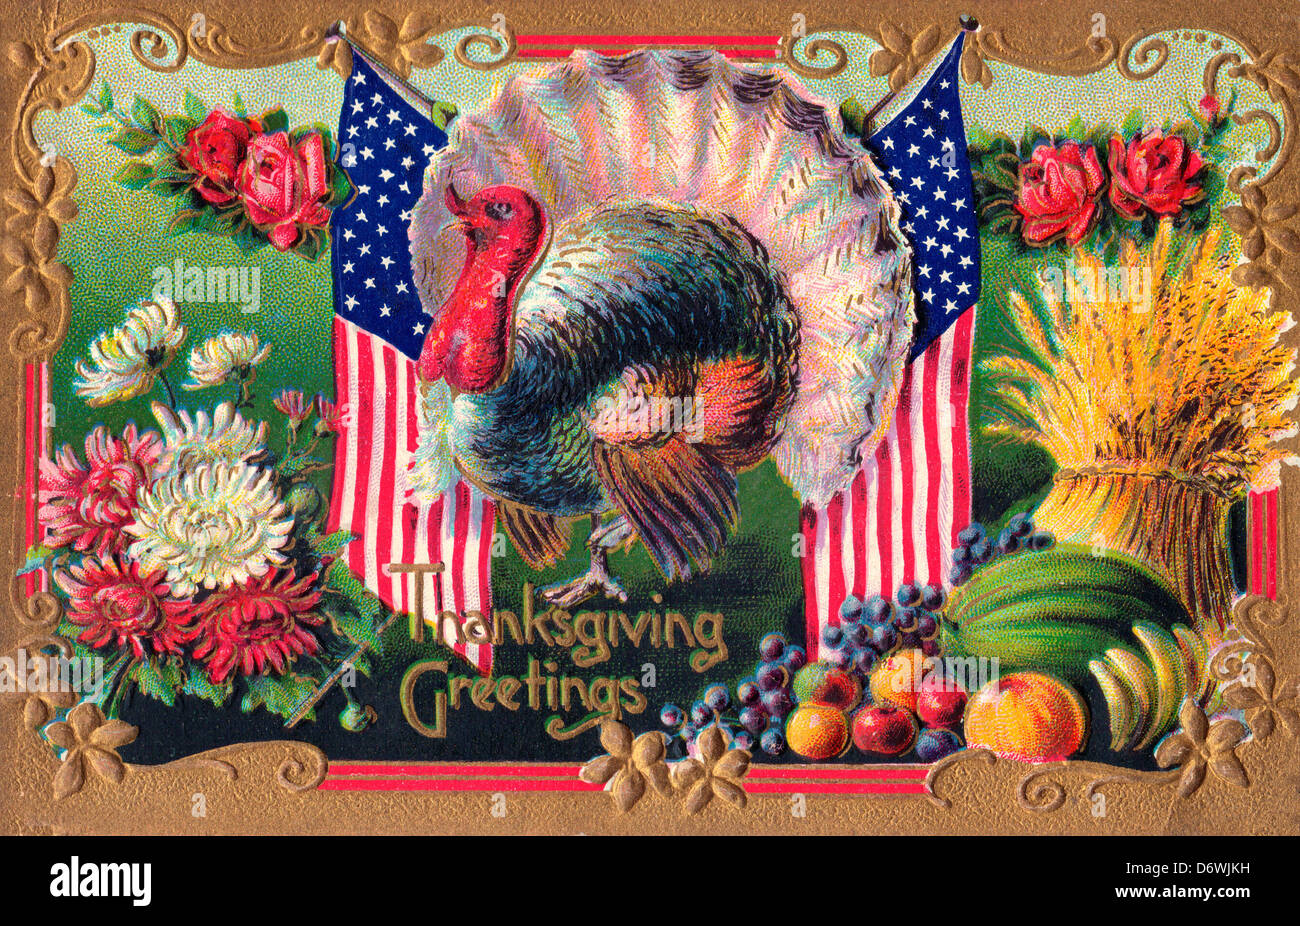 Thanksgiving greetings turkey with american flag flowers fruits thanksgiving greetings turkey with american flag flowers fruits and hay m4hsunfo